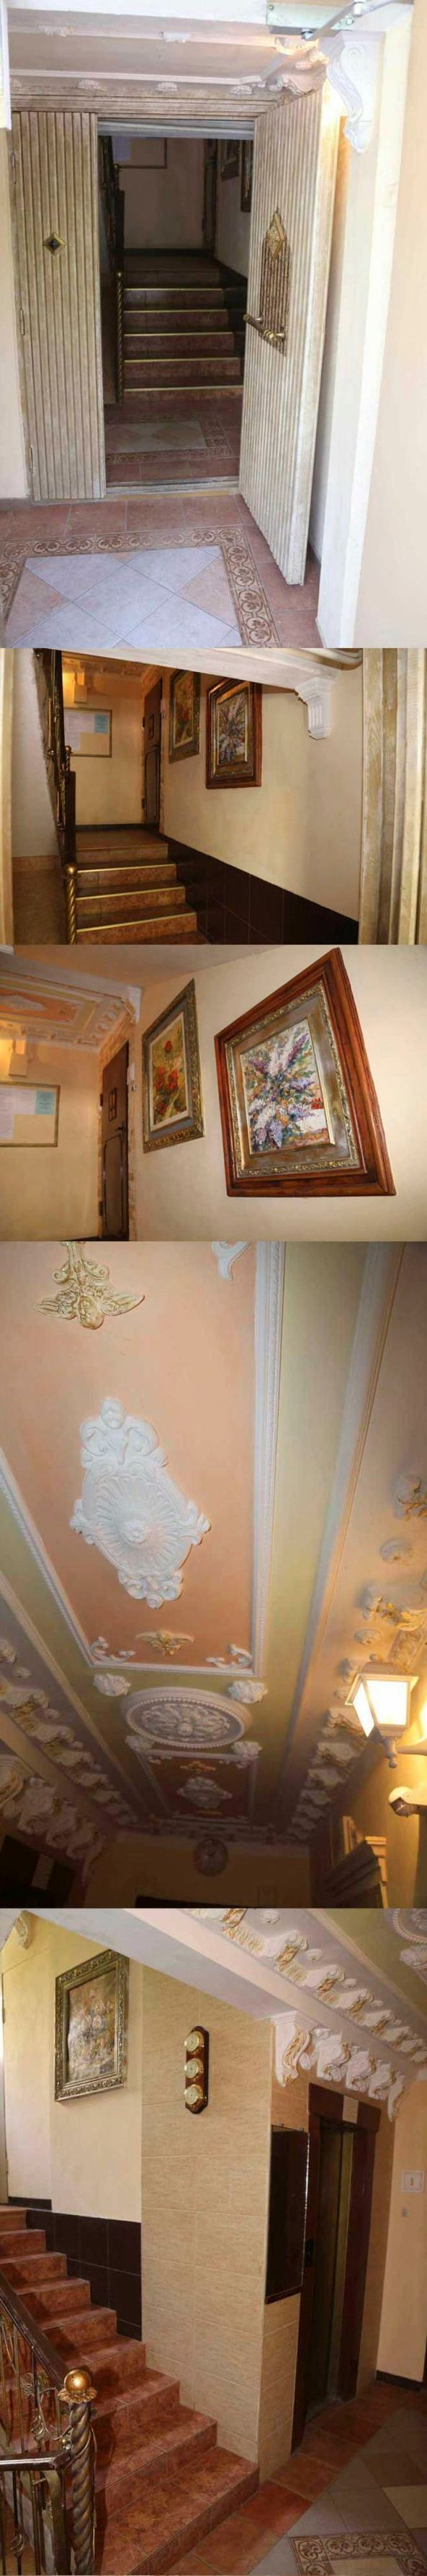 Pictures of House Beautiful Russian architecture